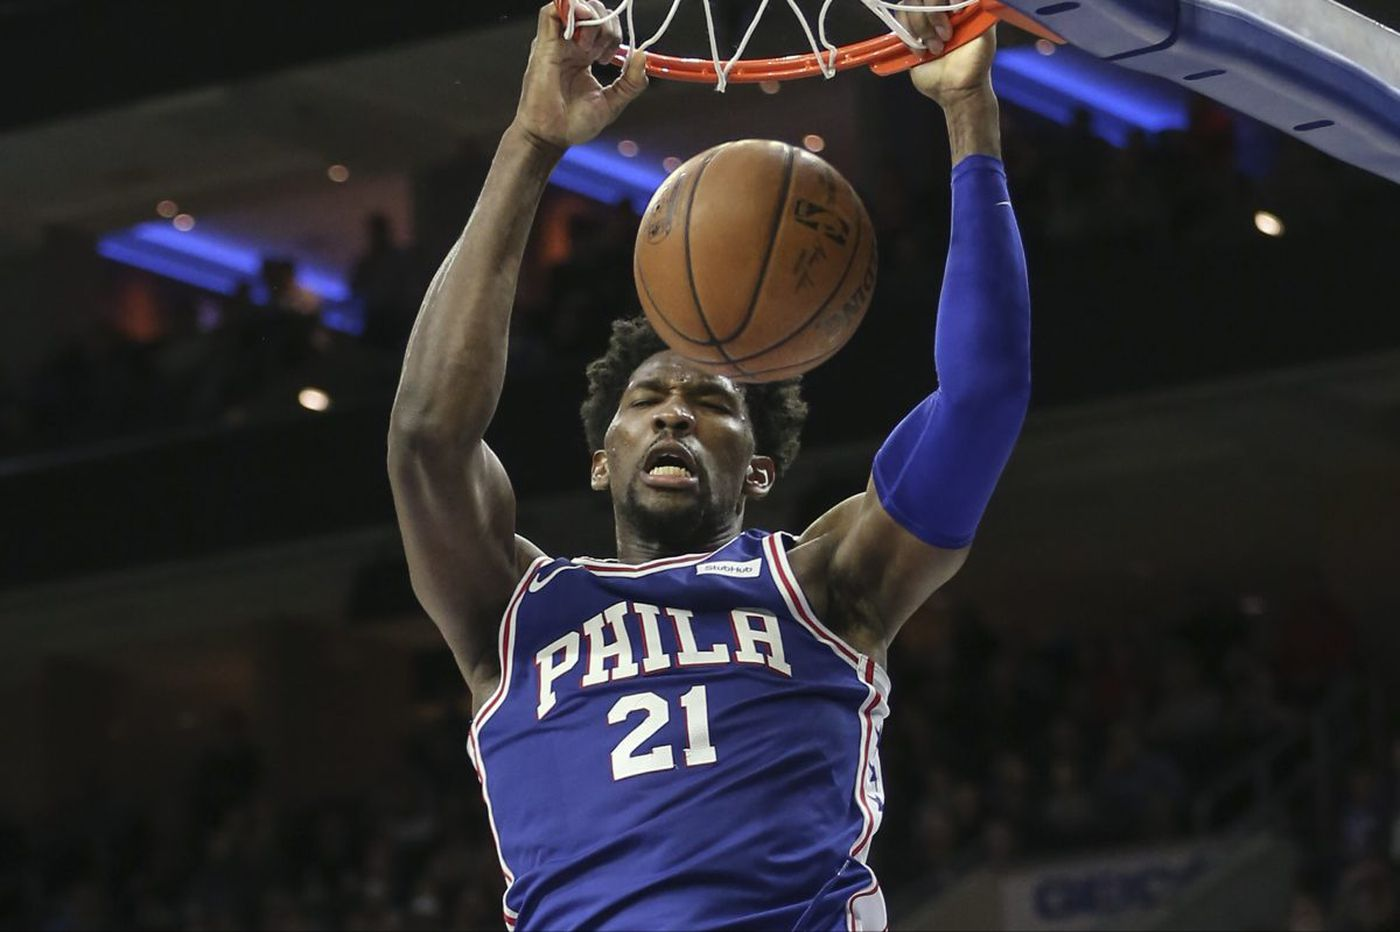 Joel Embiid expected to play in back-to-back games again